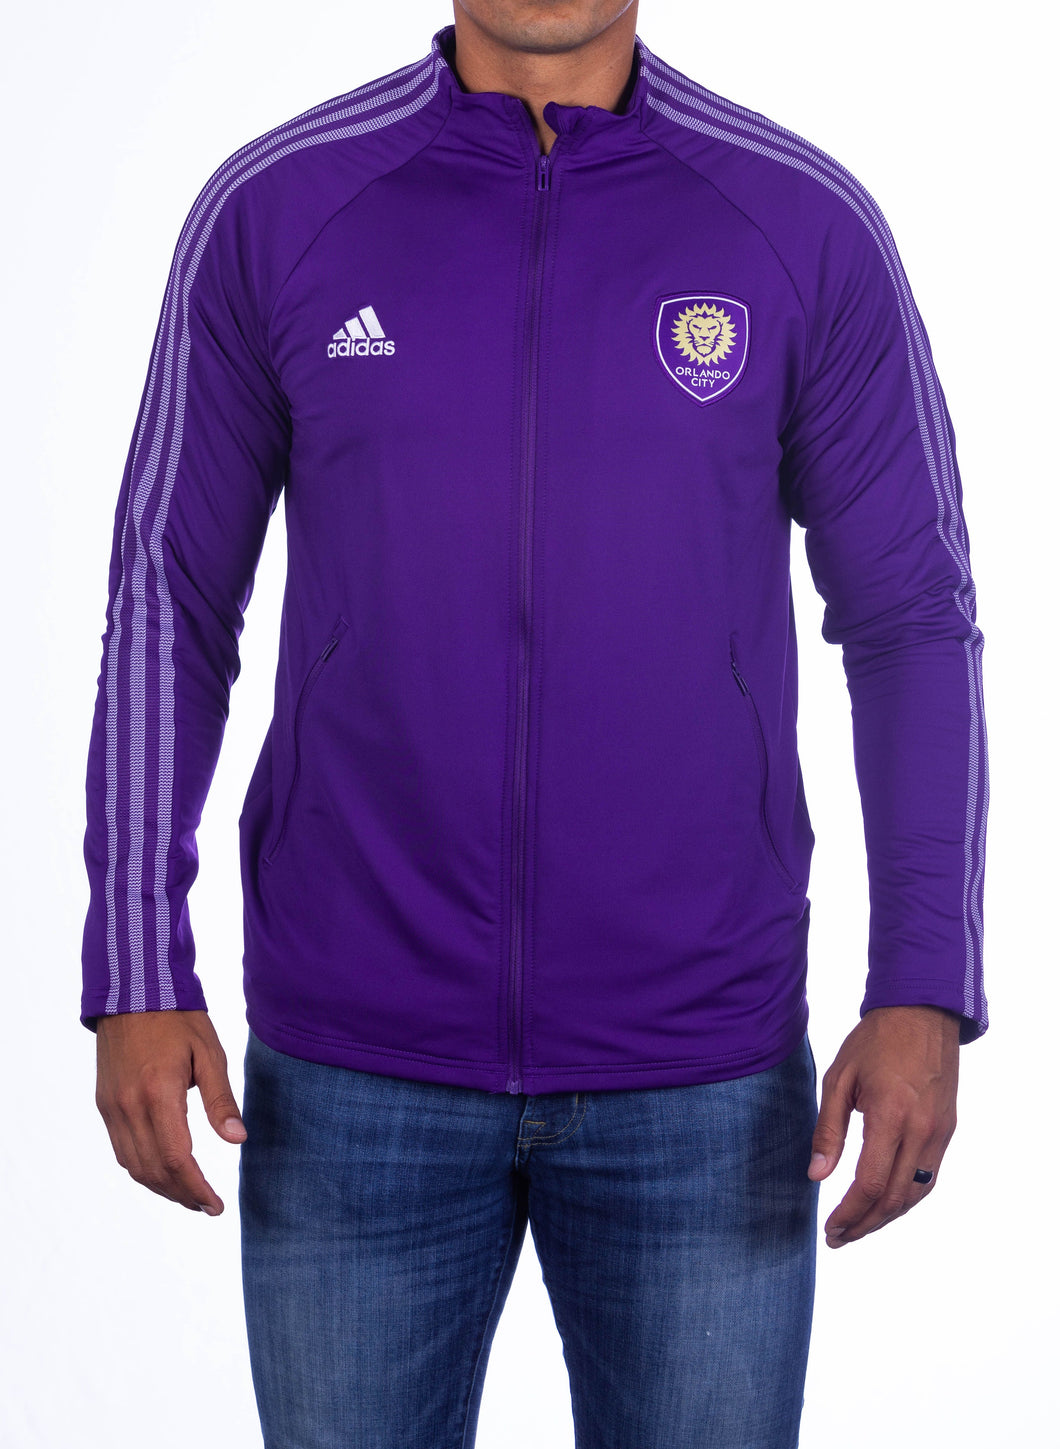 Men's Adidas Anthem Jacket - Purple